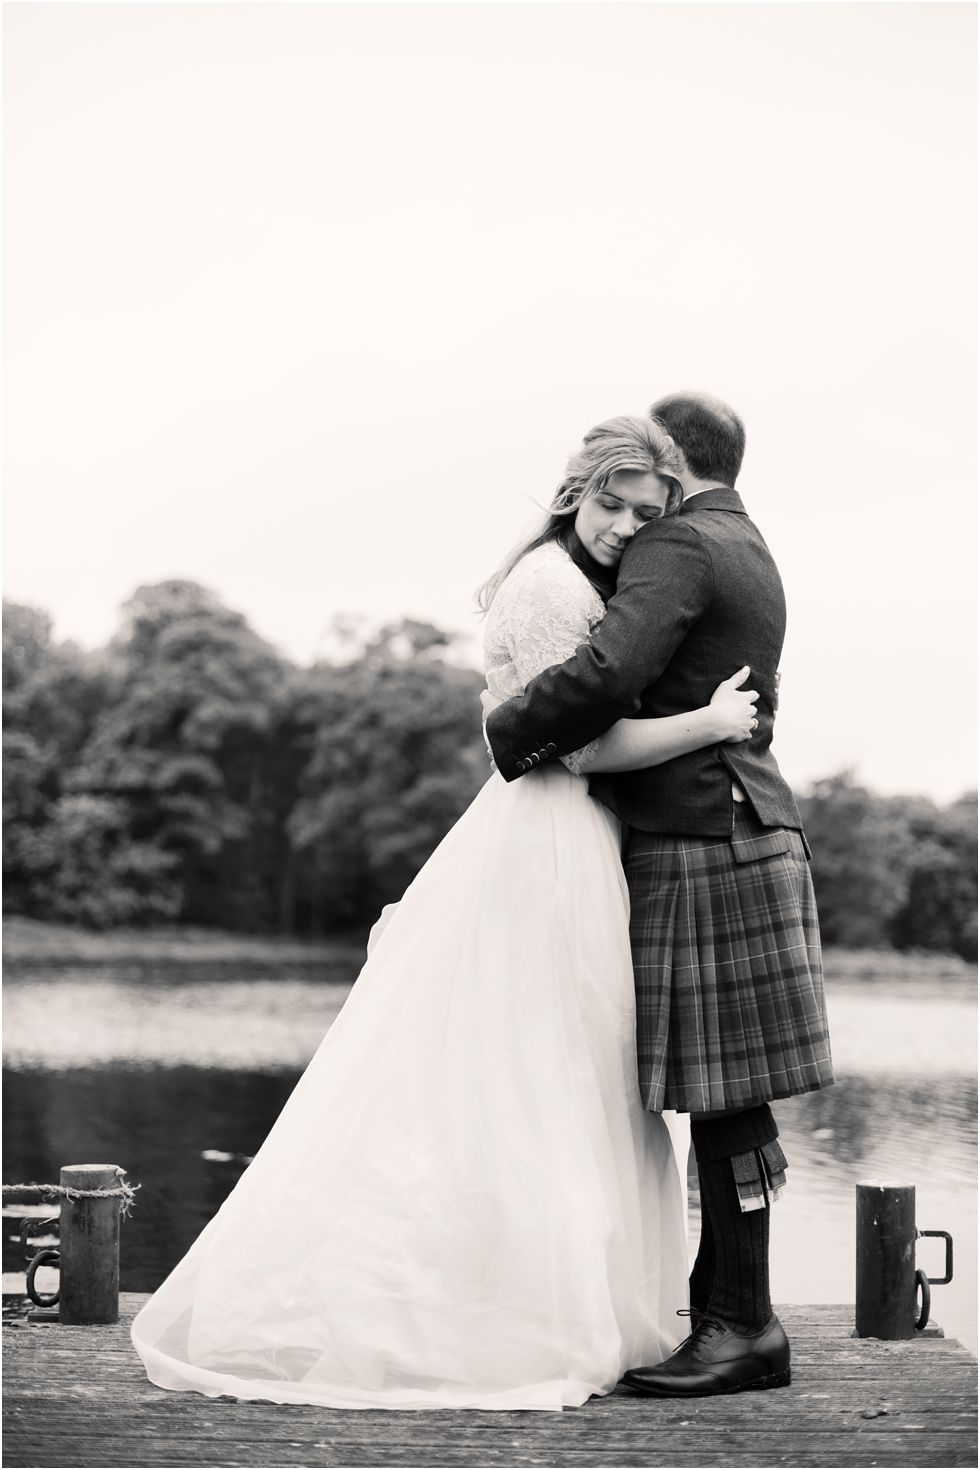 Broxmouth-Park-wedding-photography-39.jpg